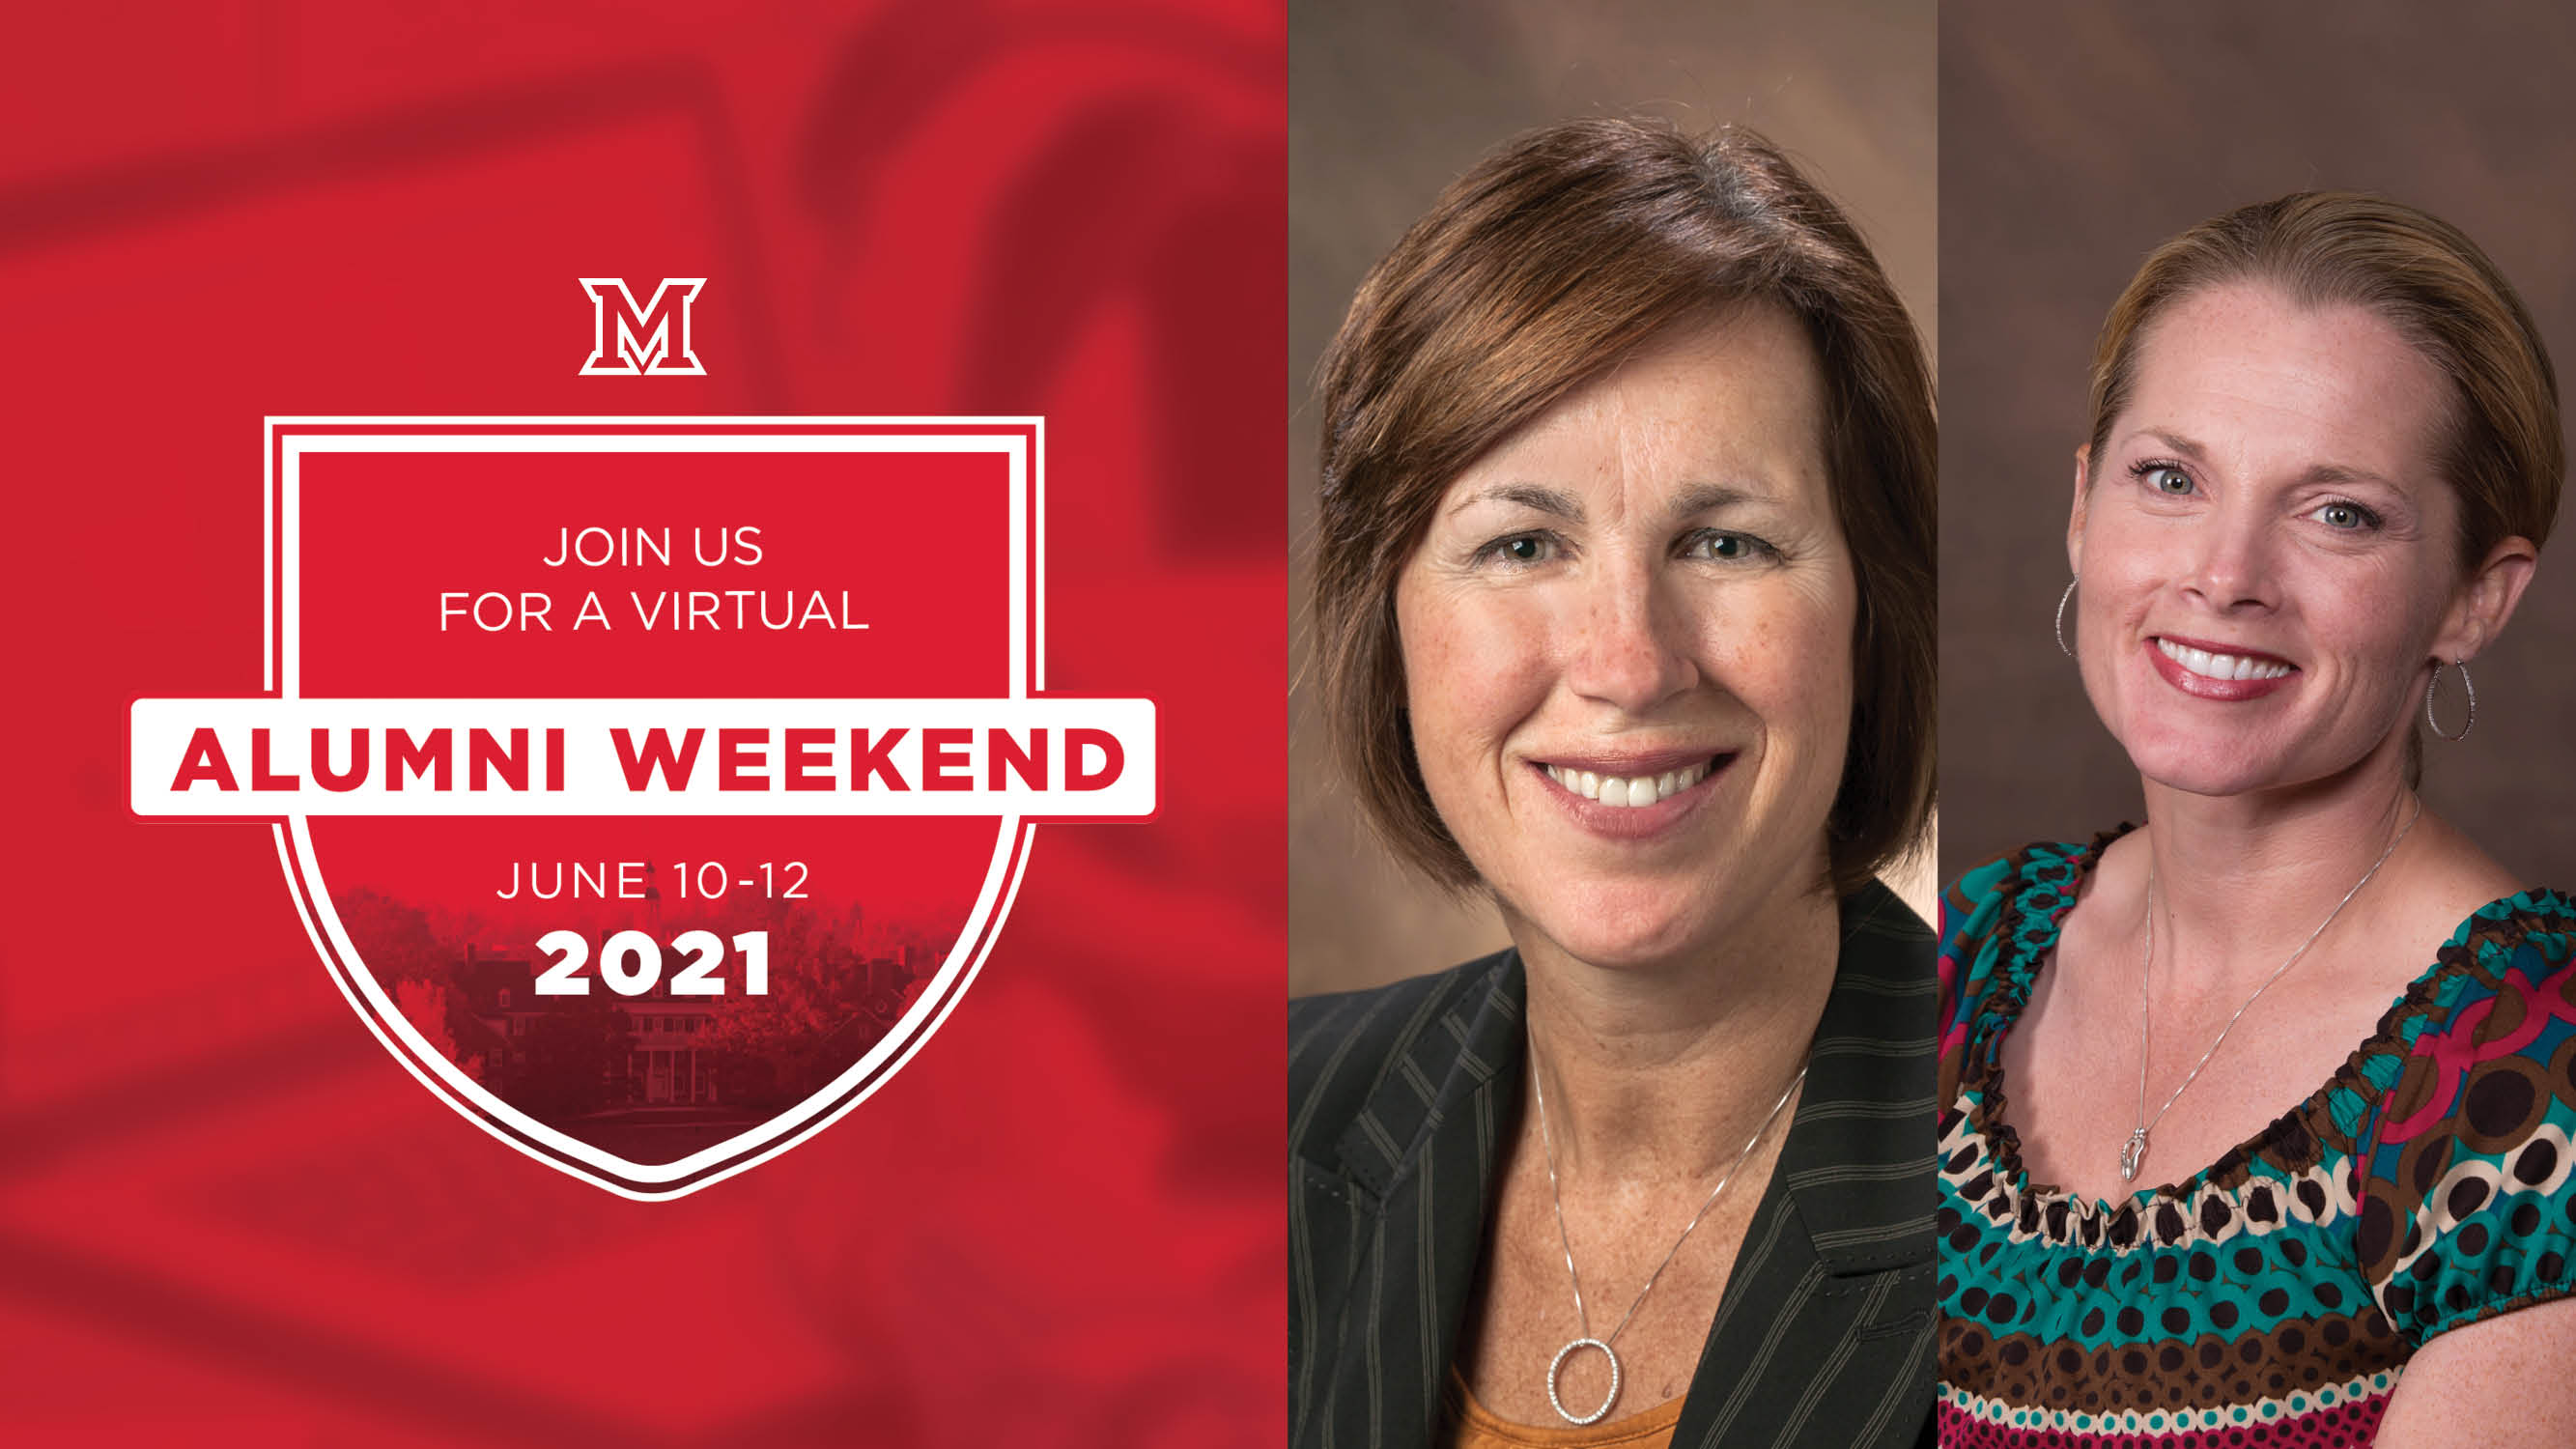 Image for Miami Presents Alumni Weekend: Exploring Cognitive Diversity and Whole-brain Thinking with Dr. Gillian Oakenfull and Prof. Cynthia Oakenfull webinar